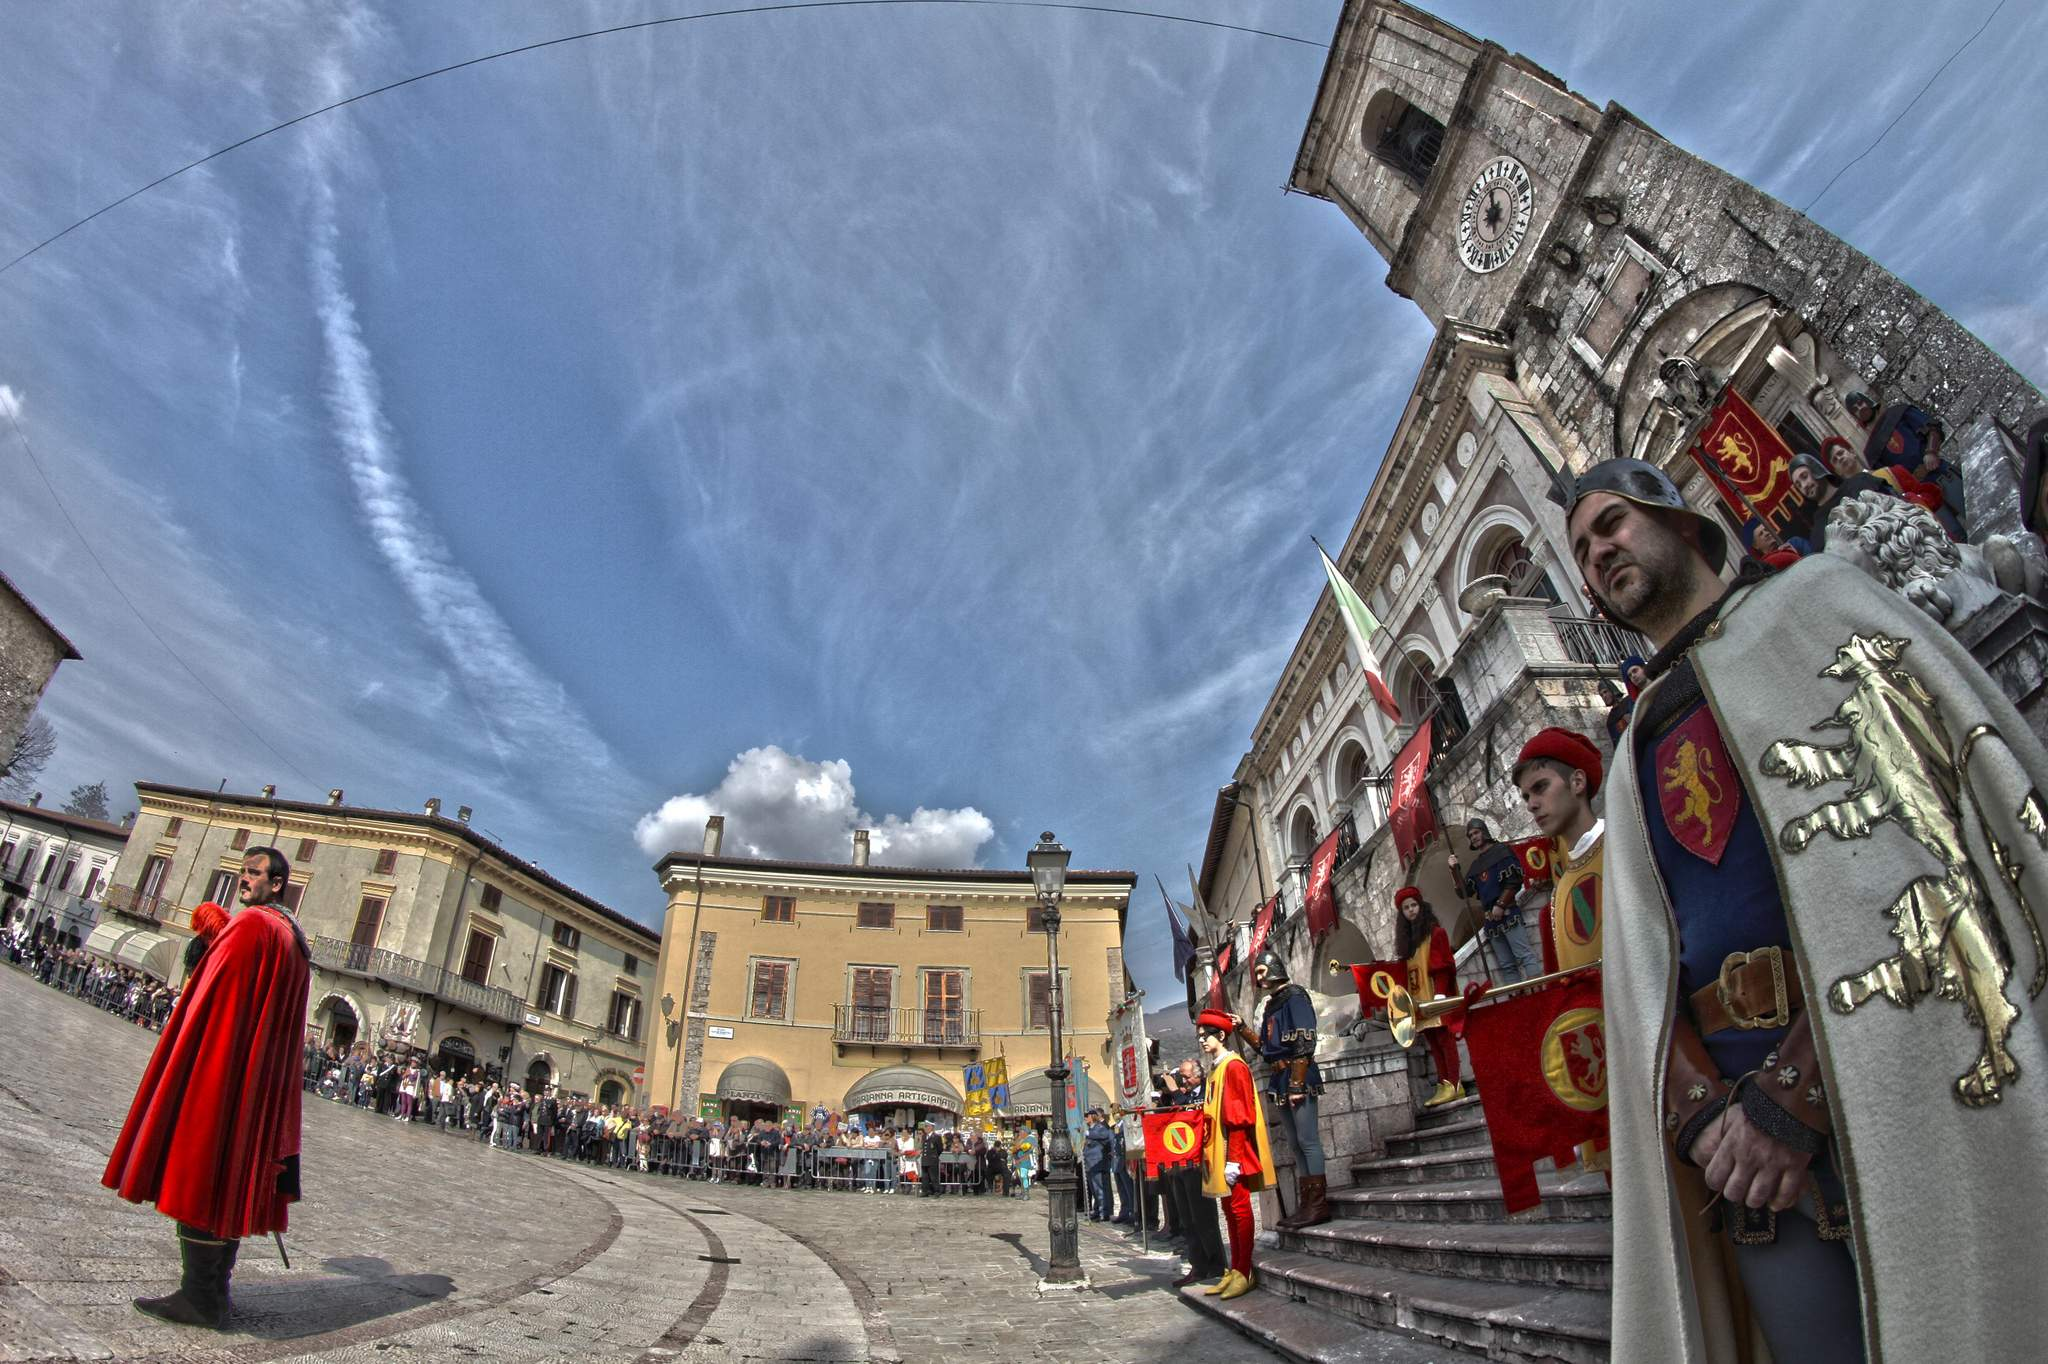 figuranti_piazza_e_scale_8mm_HDR